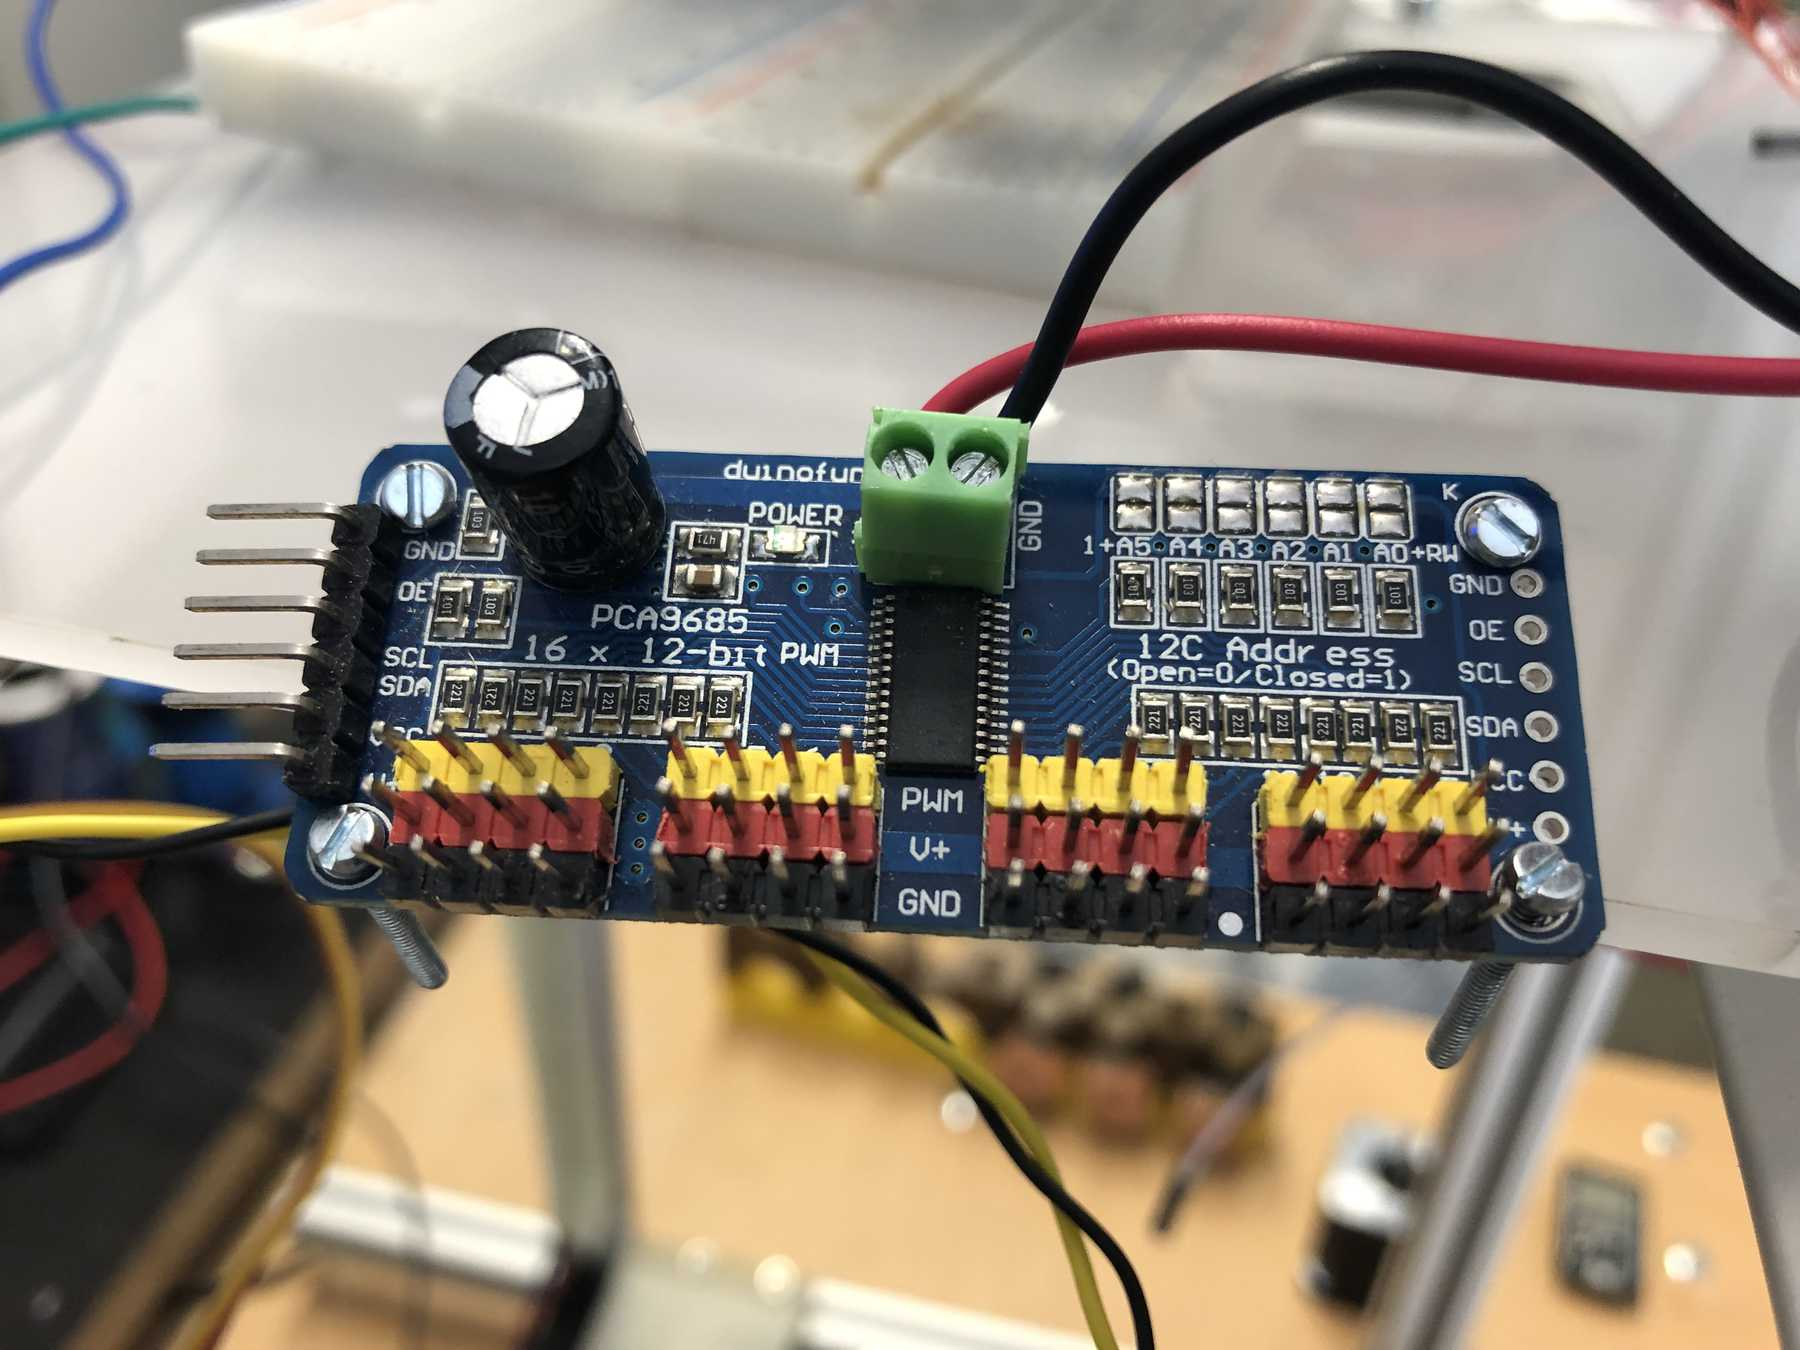 Here S The C3 Connector Pinout Also Showing The Sc Servo Circuits